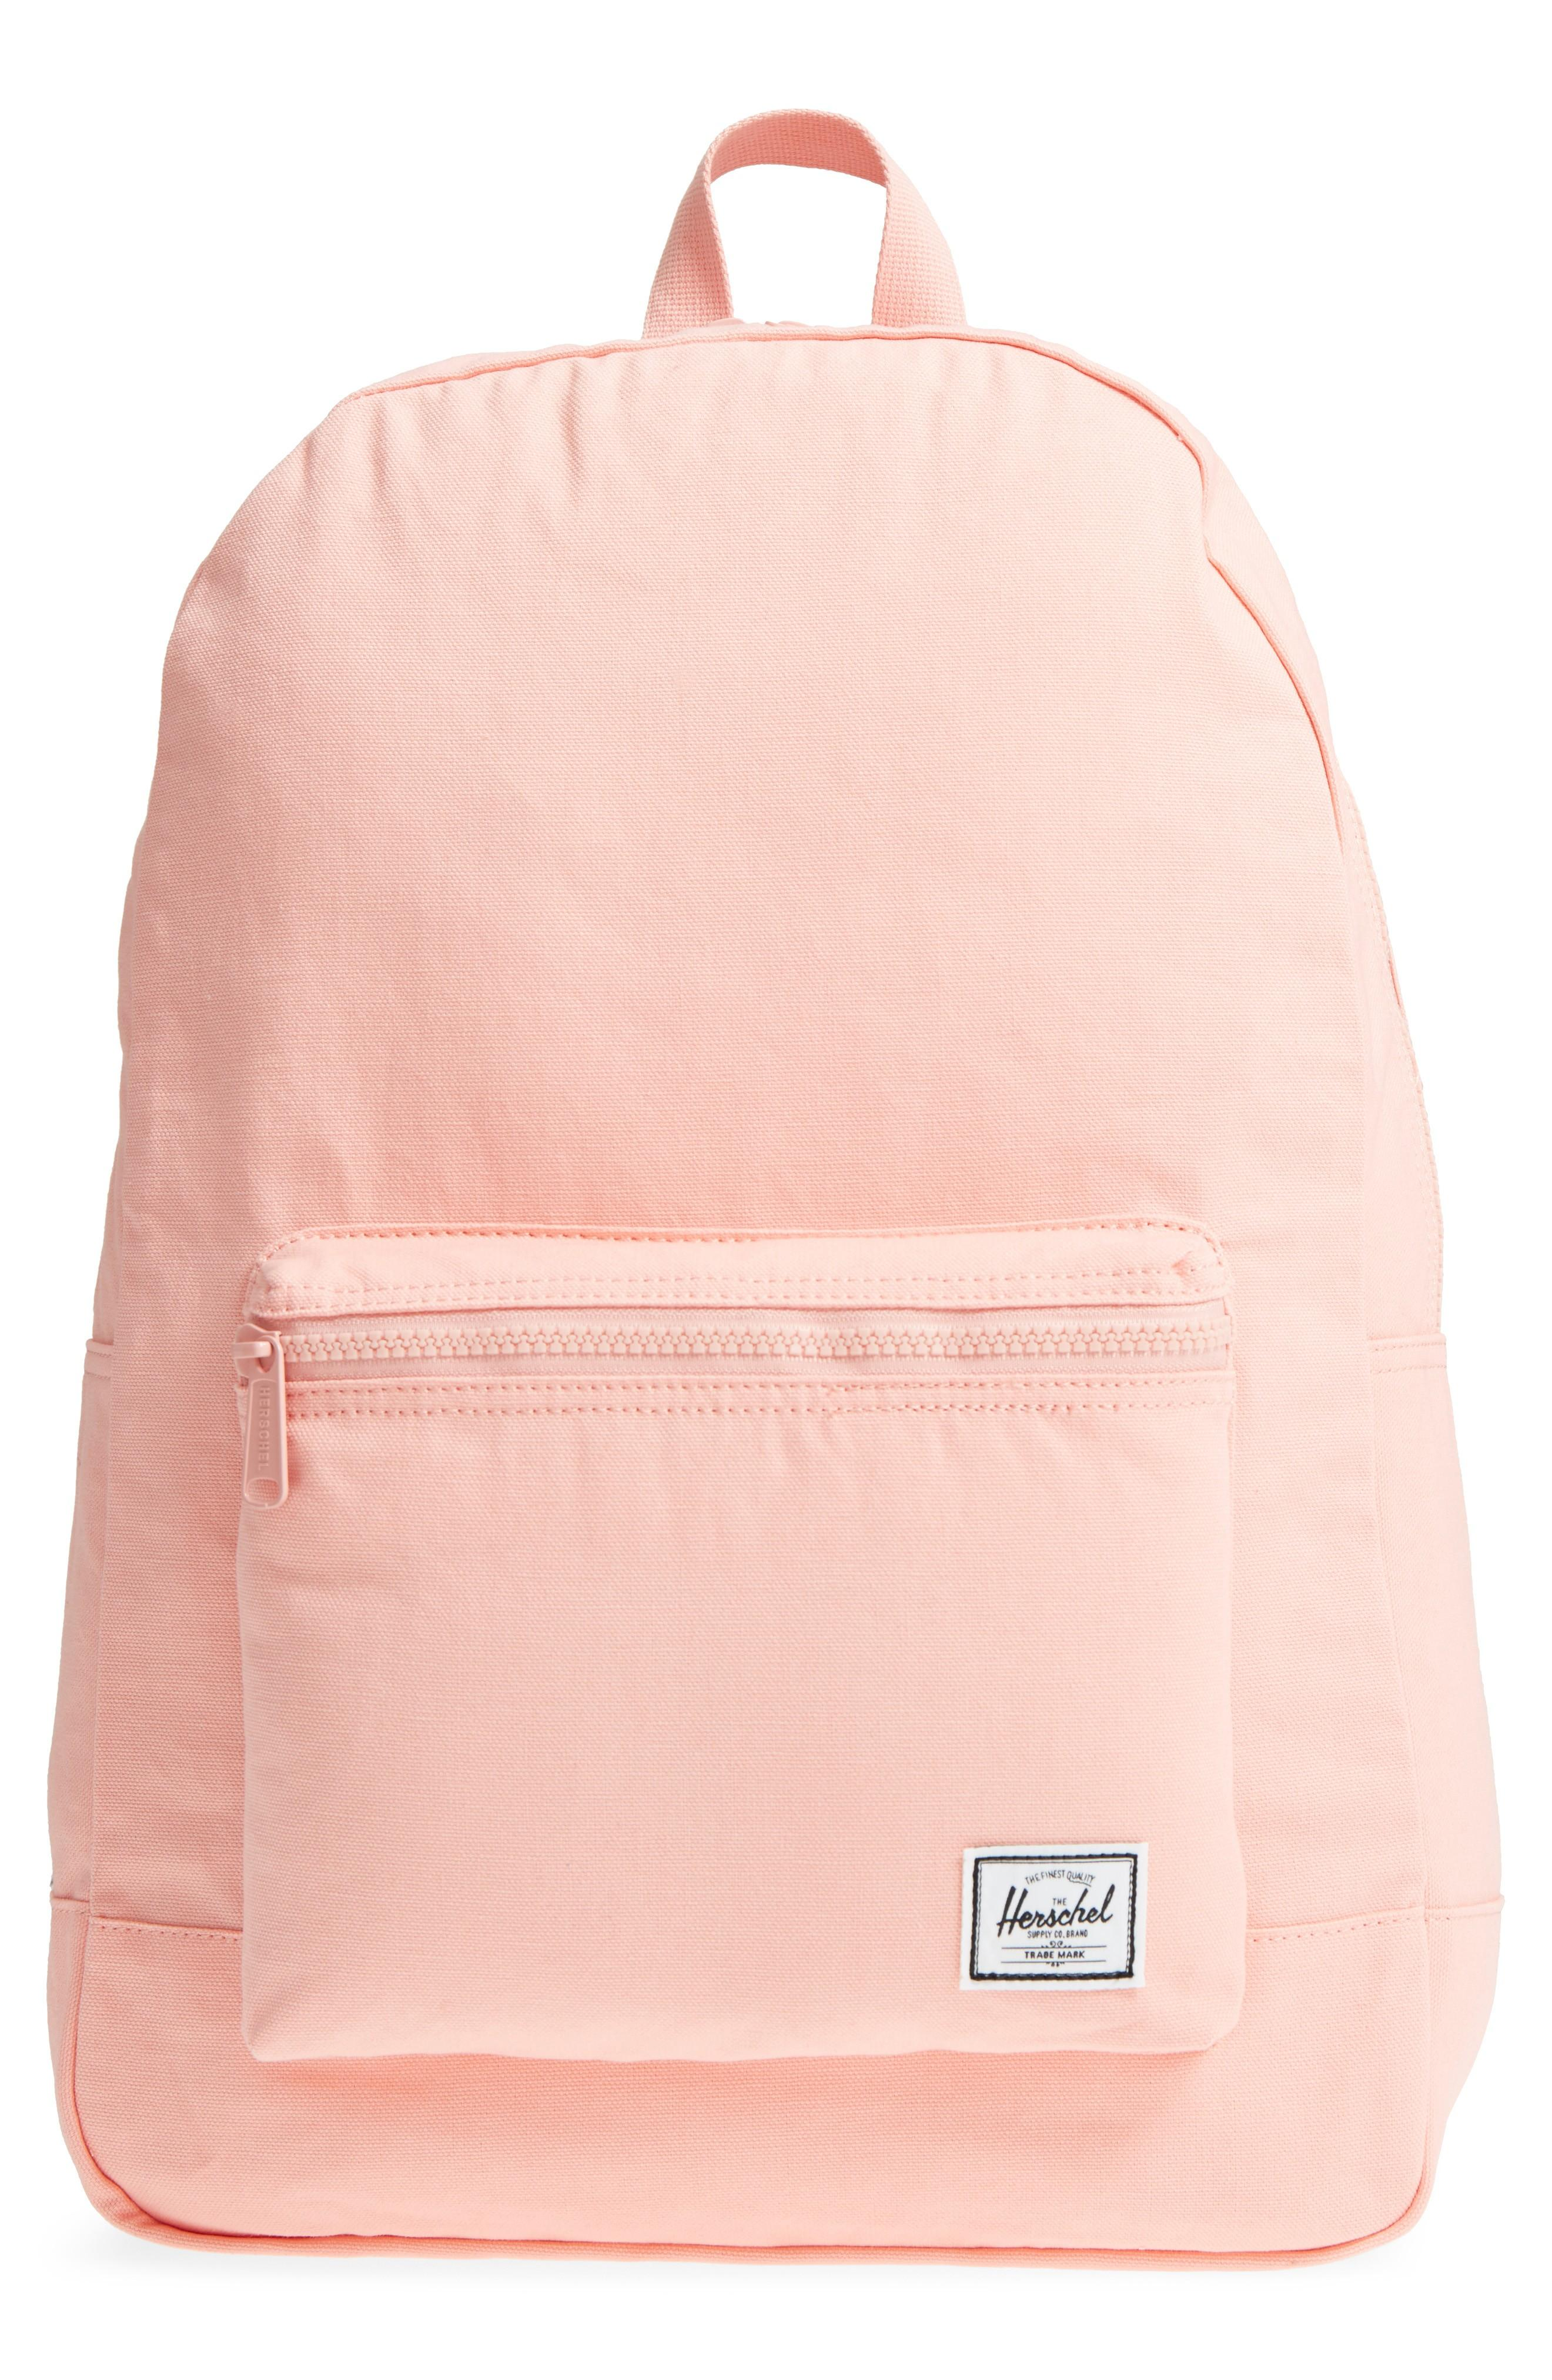 Herschel Supply Co. Cotton Casuals Daypack Backpack - Pink In Peach